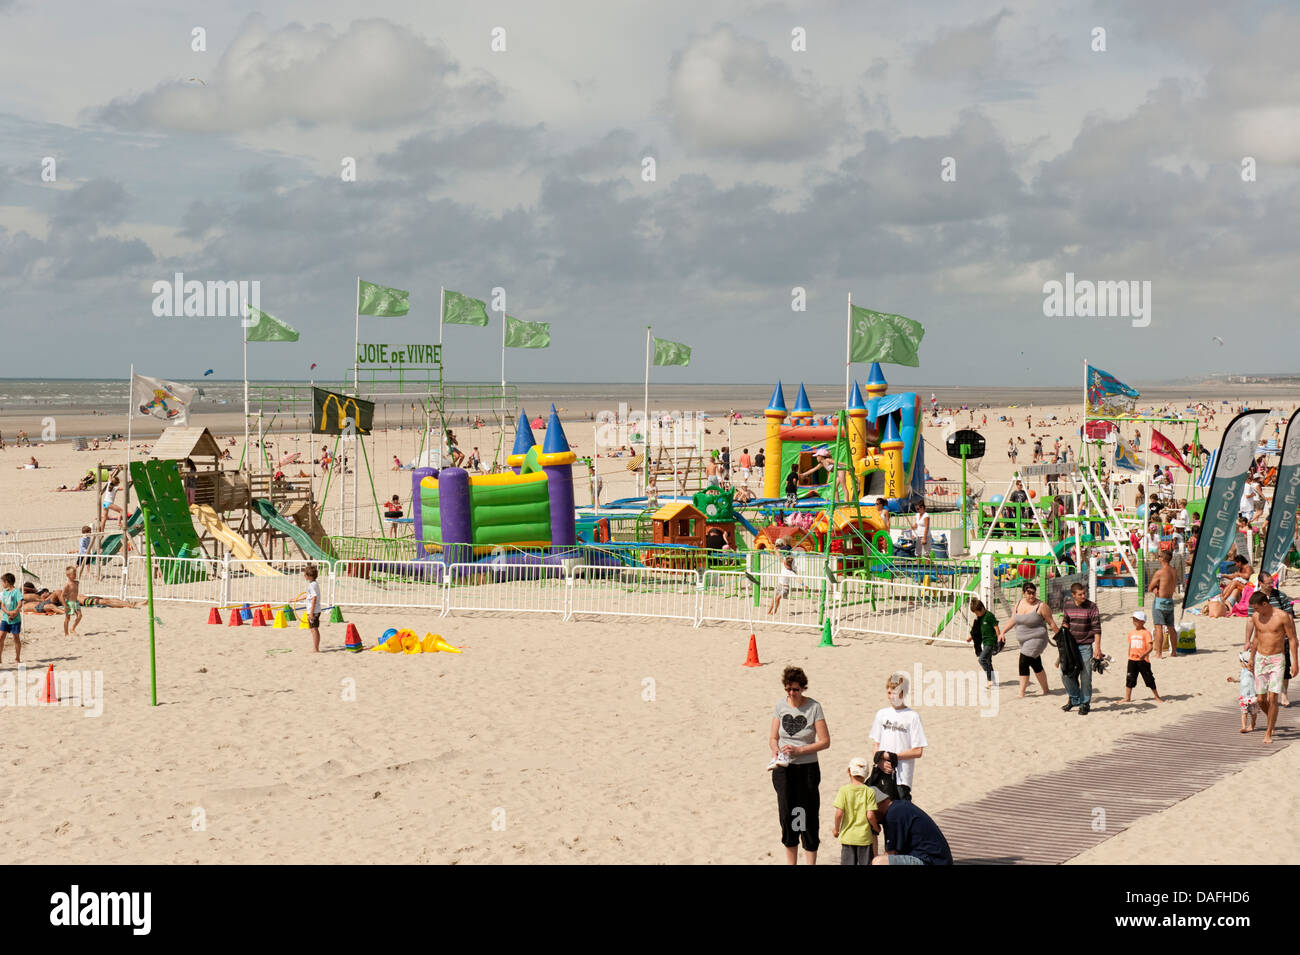 Summer busy beach scene Le Touquet France - Stock Image